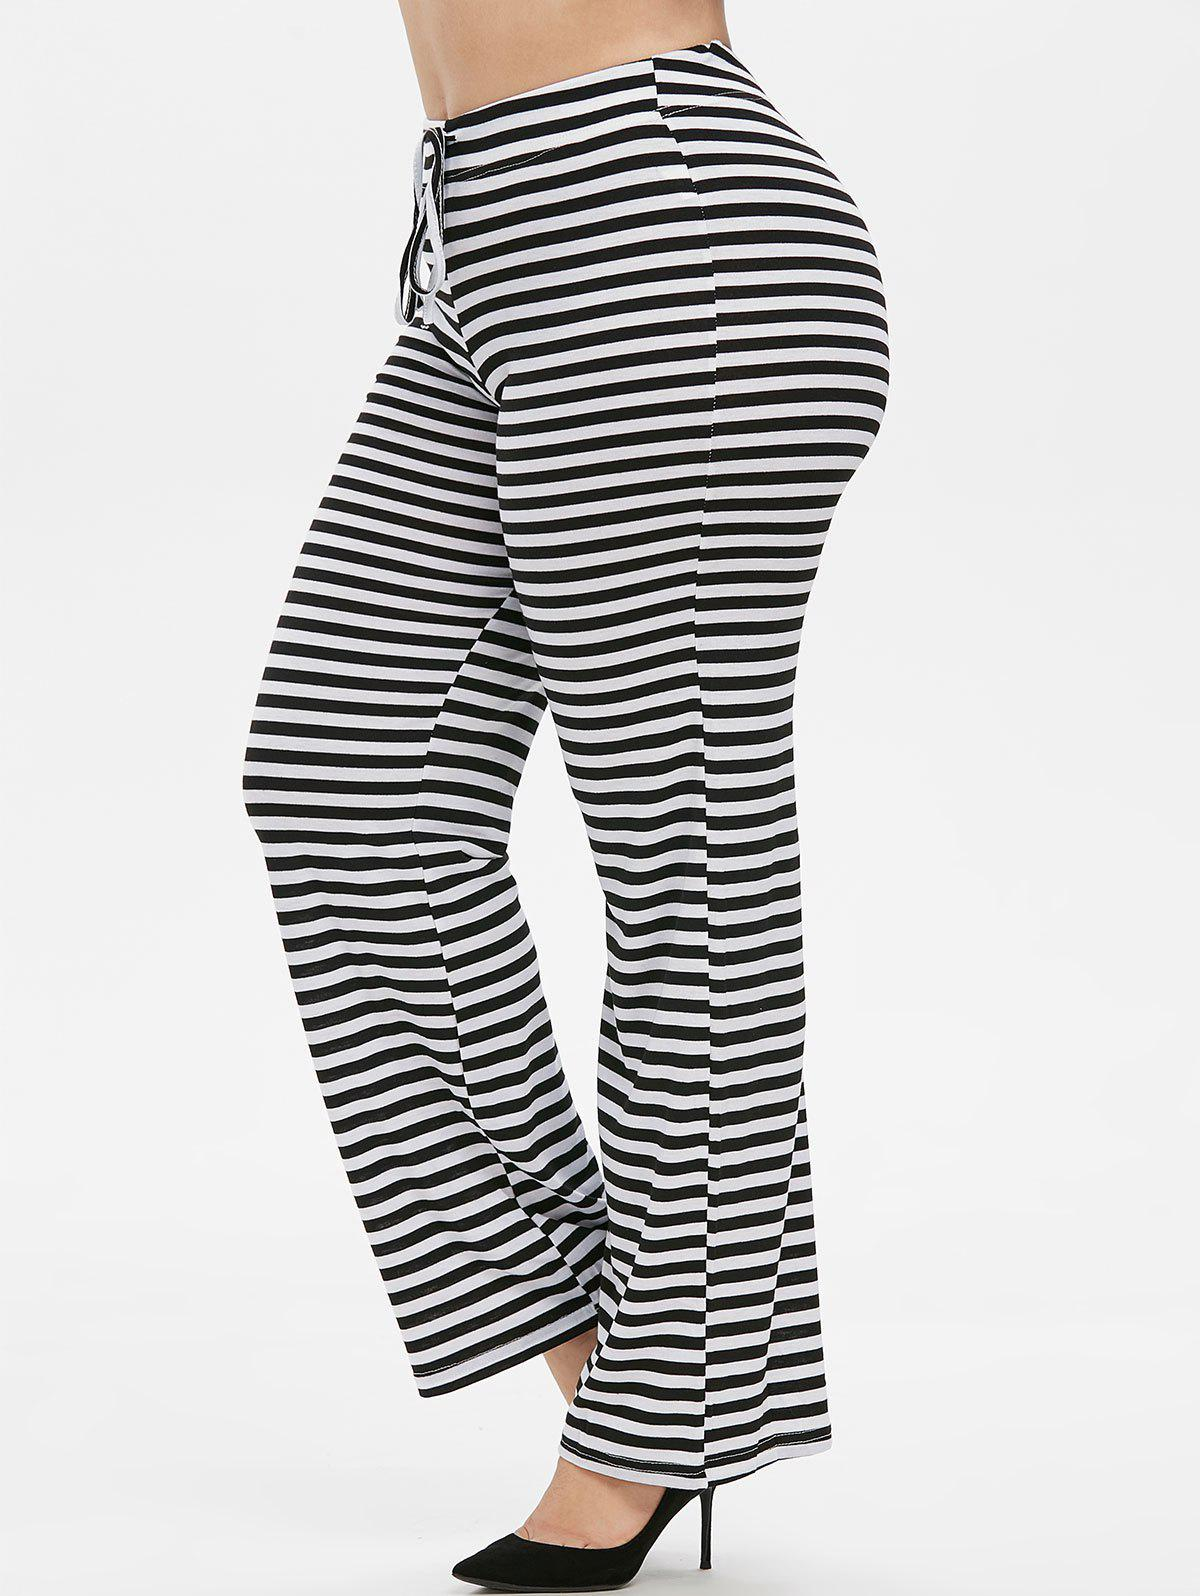 Plus Size Striped Drawstring Wide Leg Pants - multicolor 4X